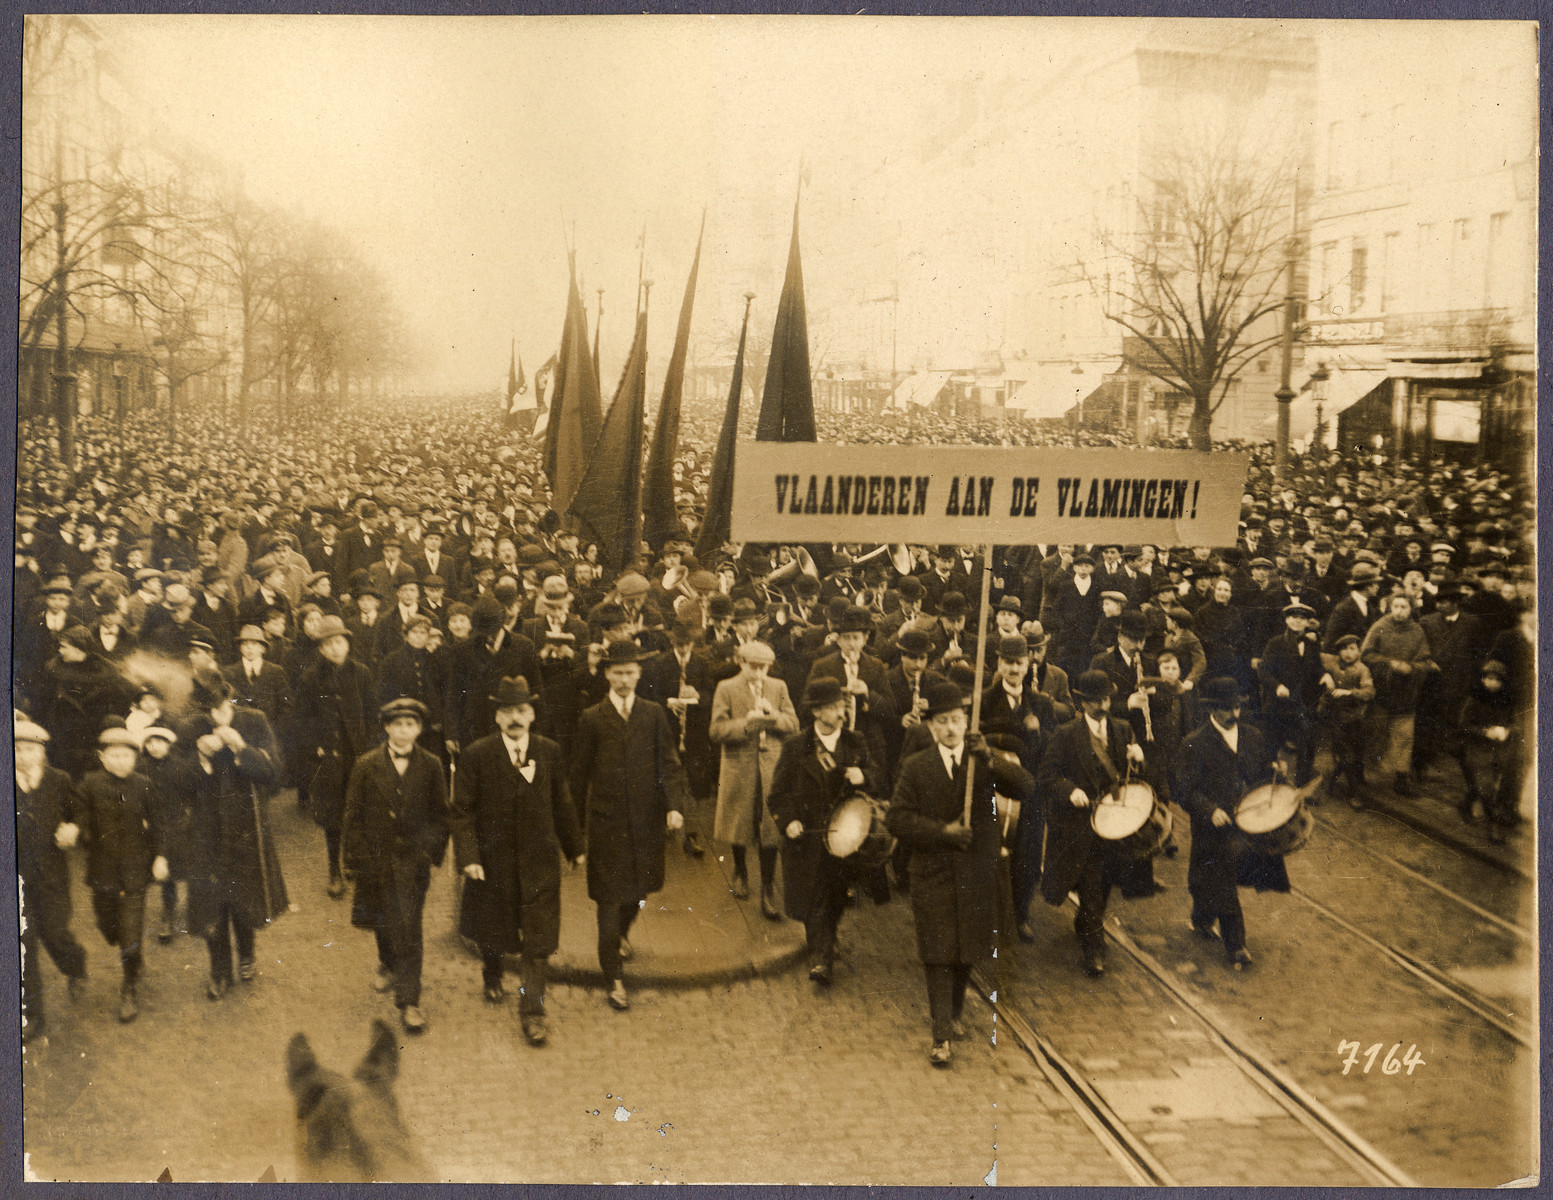 A large crowd parades through a city street carrying a sign the reads: Vlaanderen and de Vlamigen (Flanders for the Flemish).